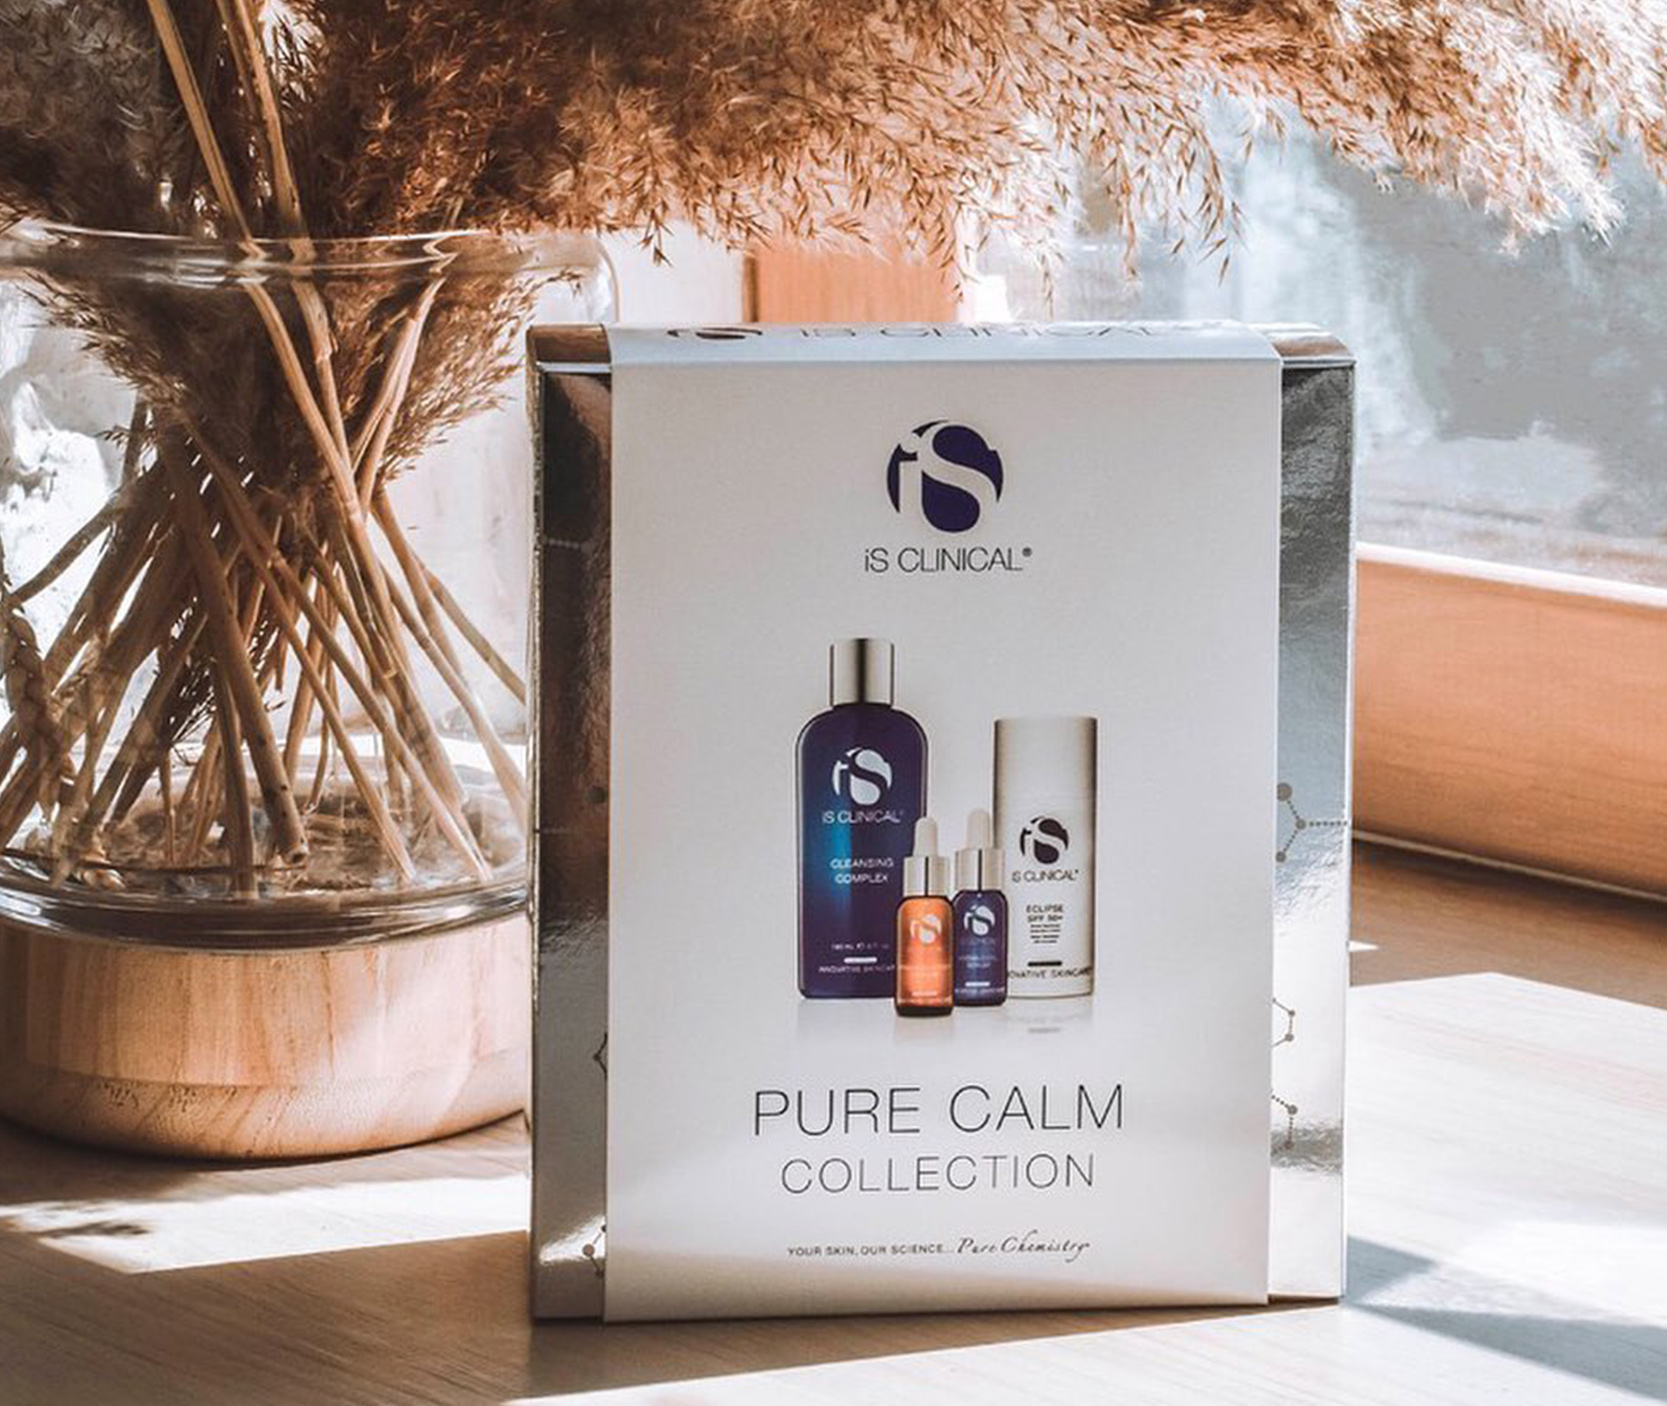 iS Clinical: Pure Calm Collection